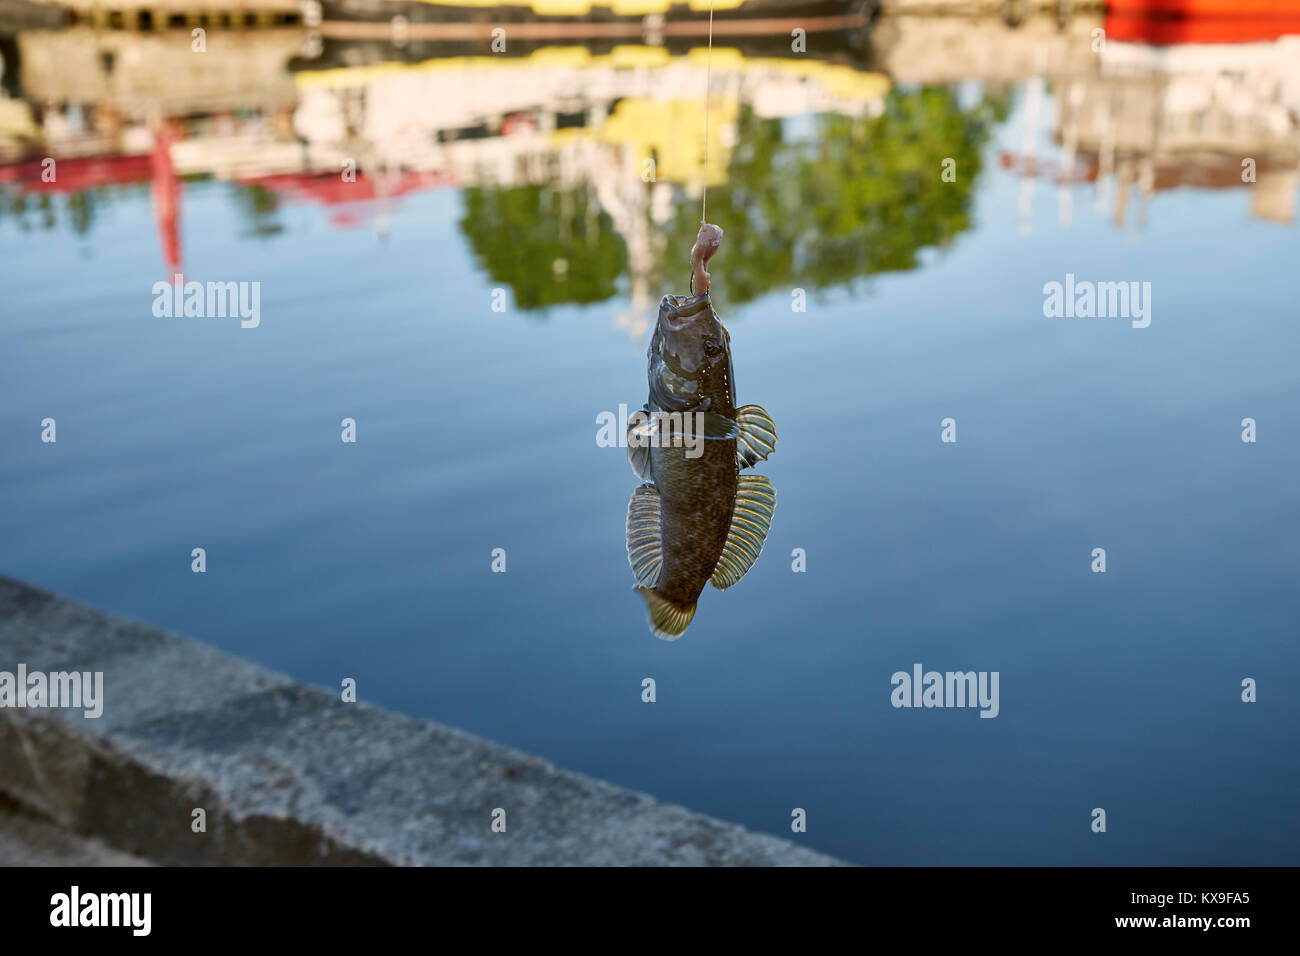 Hook worm stock photos hook worm stock images alamy for Fishing worms near me